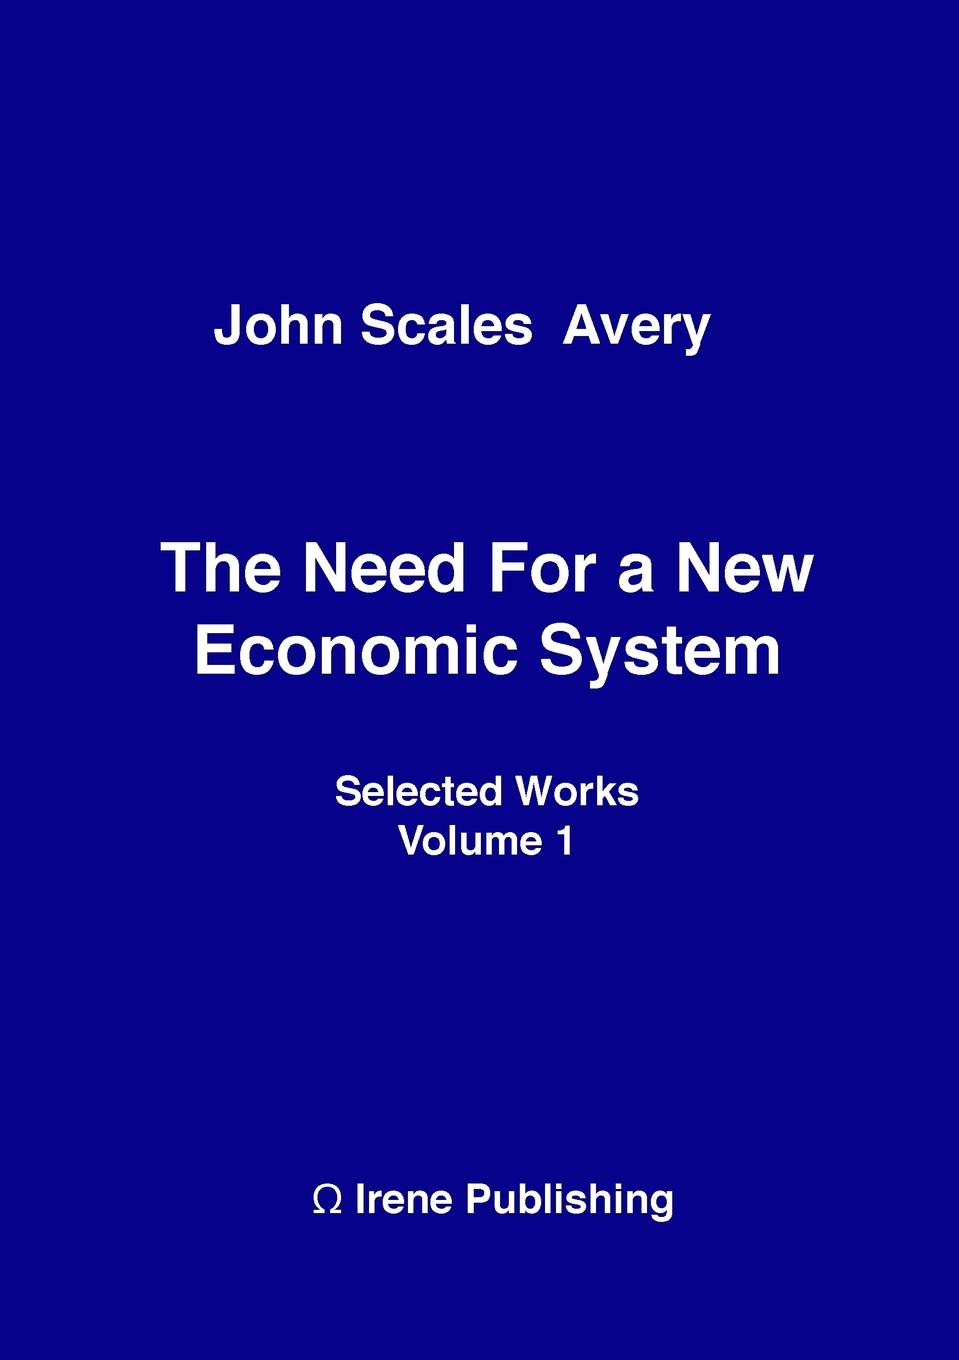 The Need for a New Economic System It is clear that our present economic system is unsustainable...